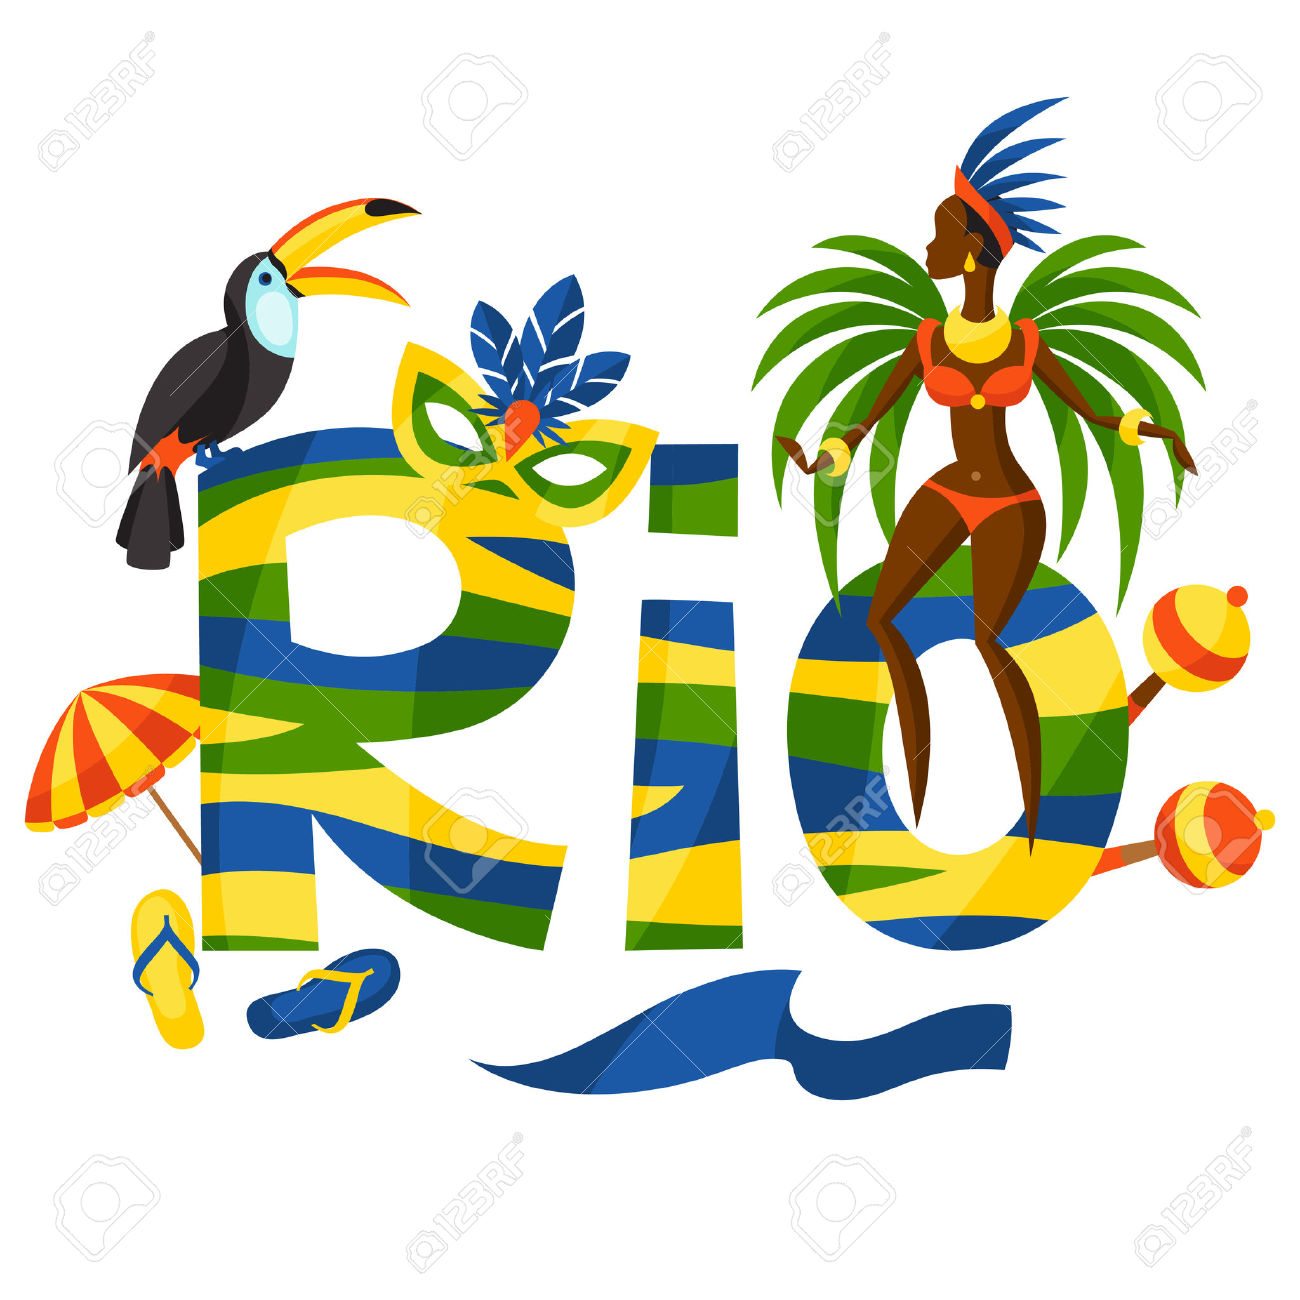 723 Brazilian Beach Stock Illustrations, Cliparts And Royalty Free.